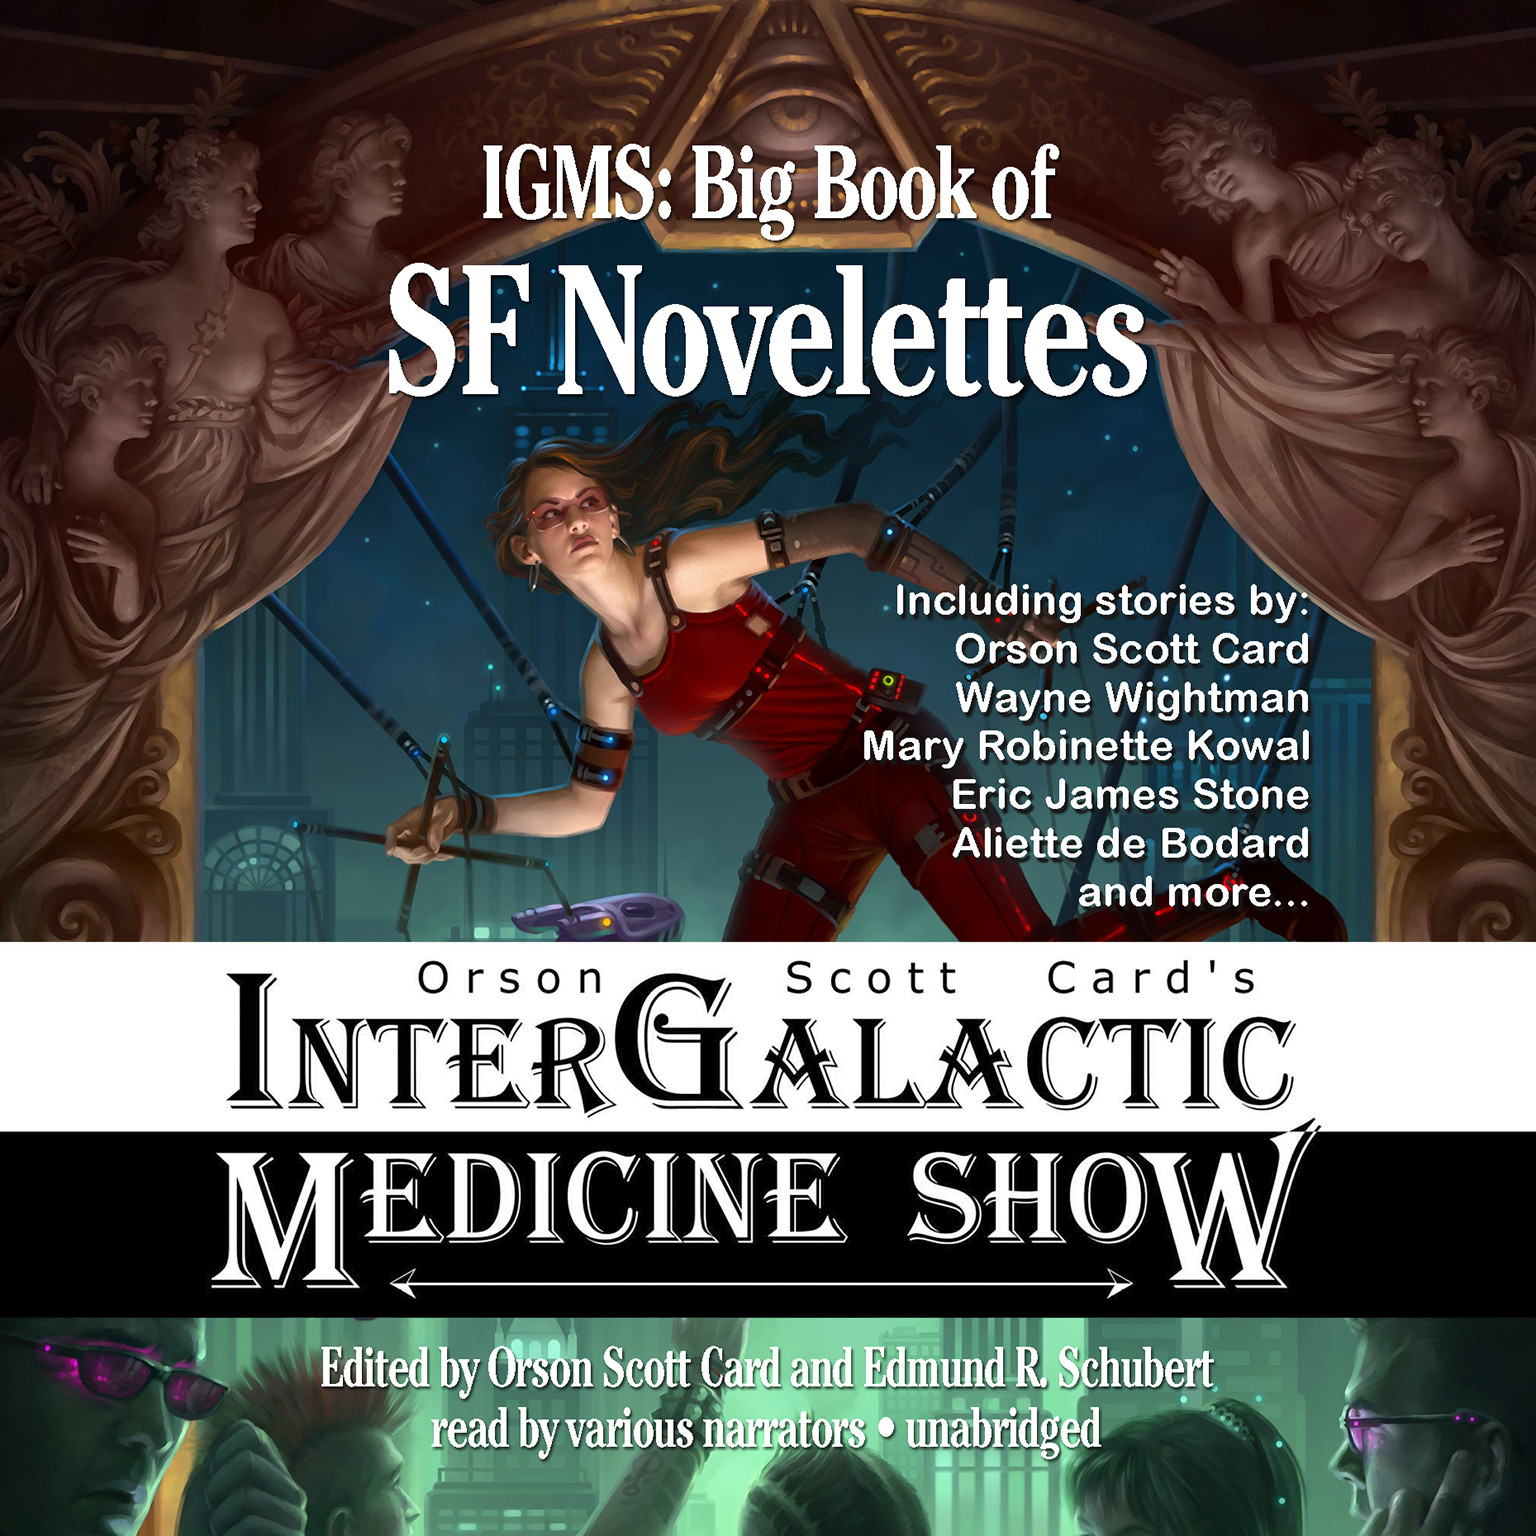 Printable Orson Scott Card's Intergalactic Medicine Show: Big Book of SF Novelettes Audiobook Cover Art